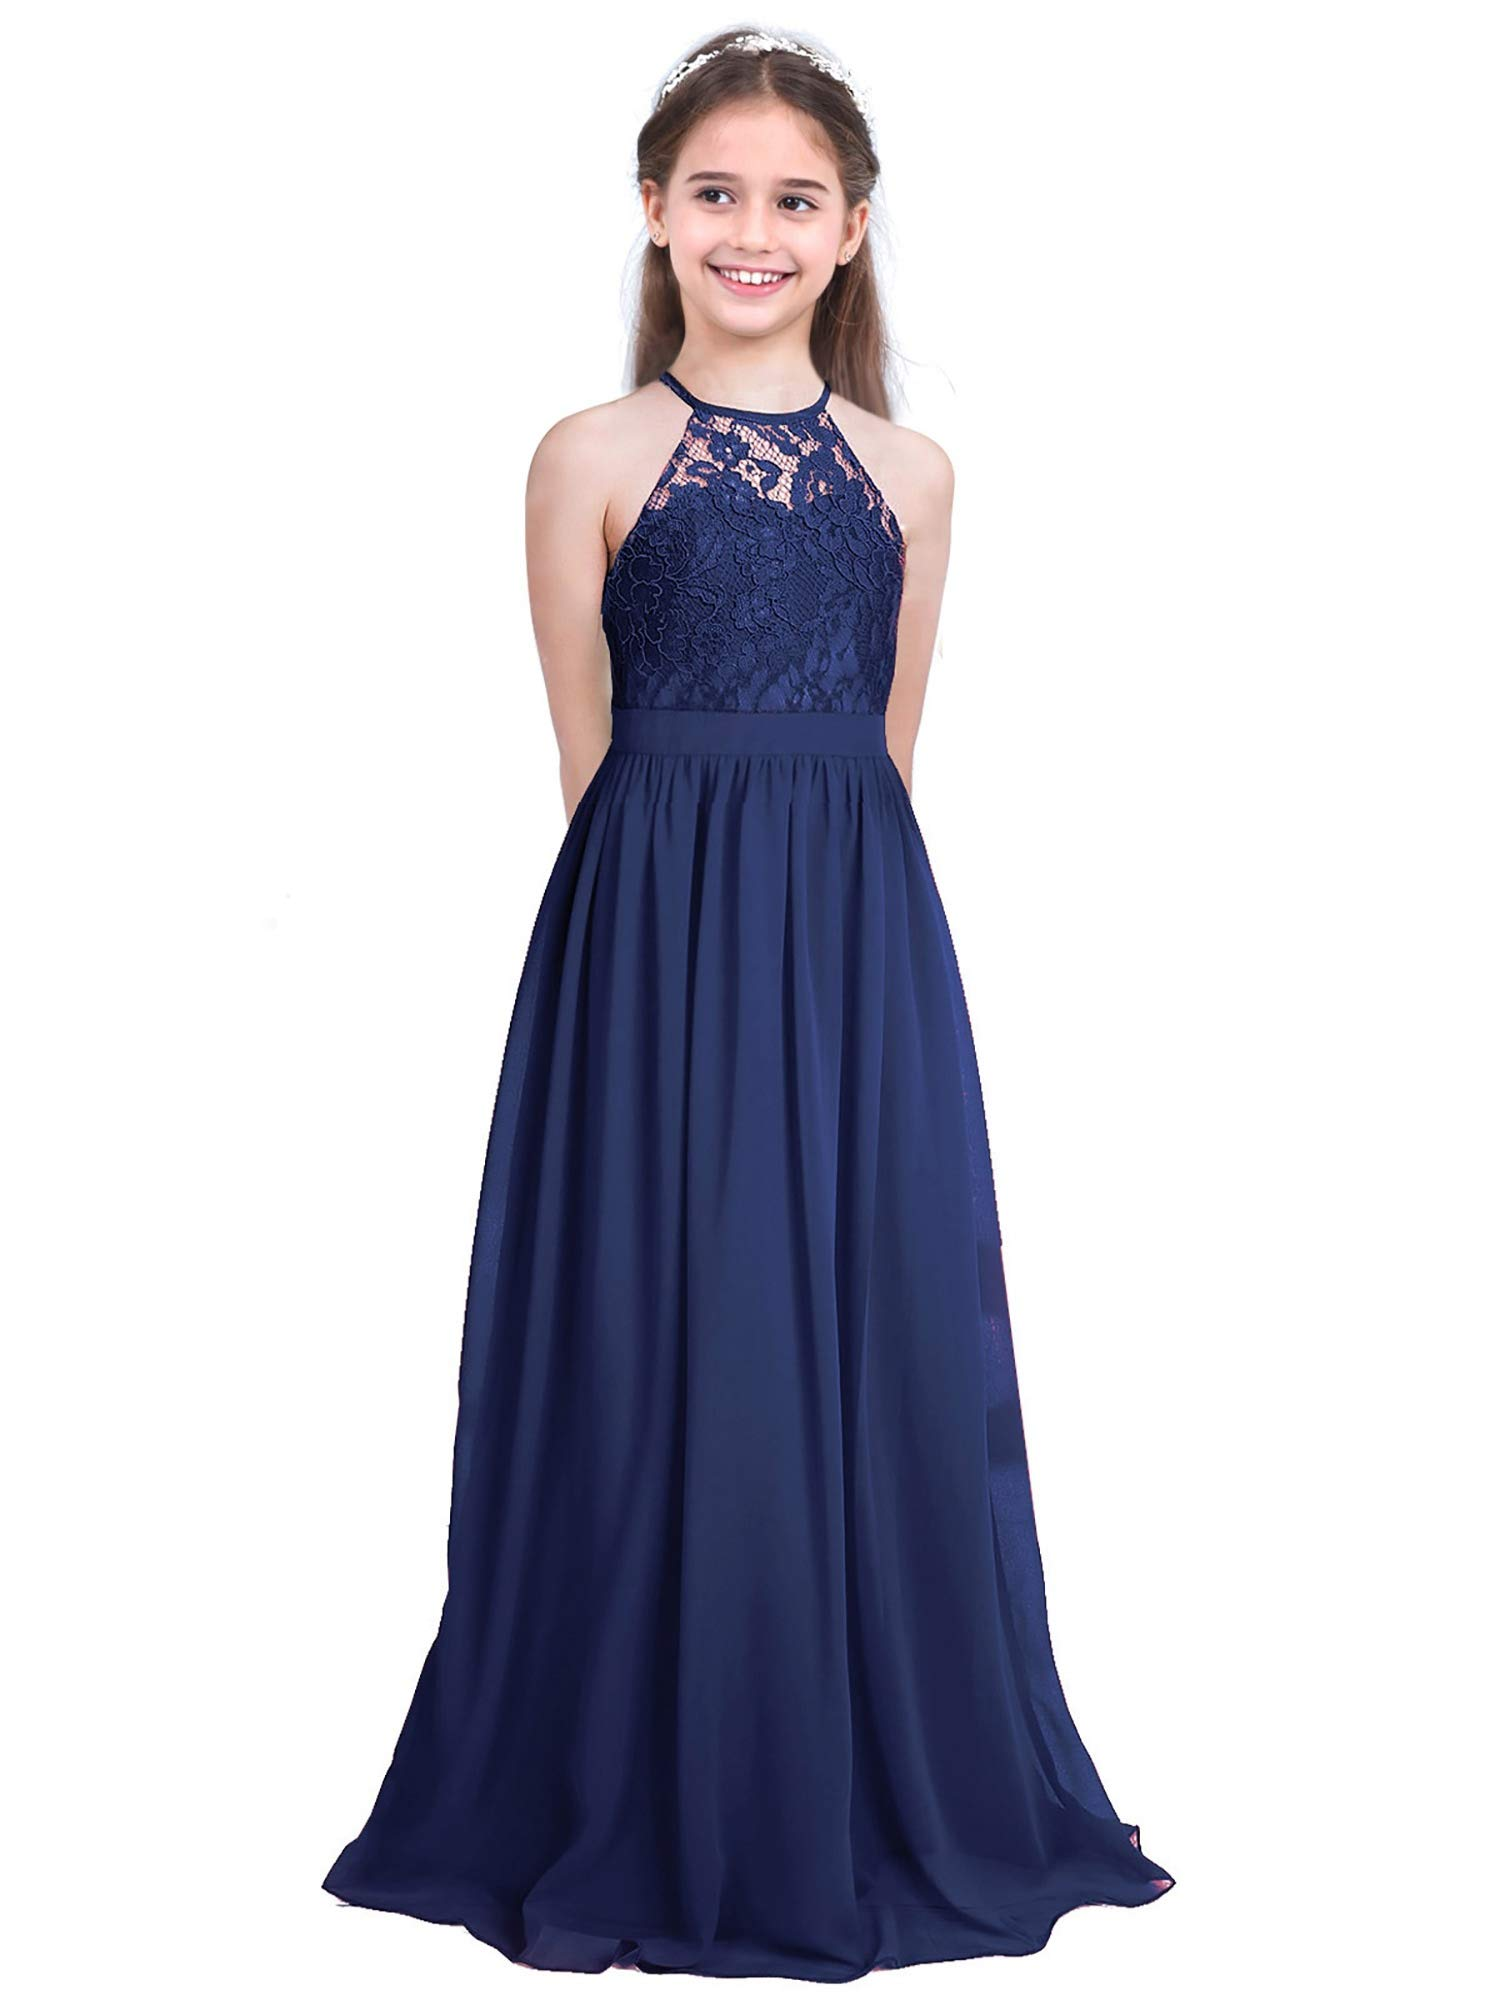 CHICTRY Kids Girls Halter Neck Chiffon Long Party Junior Wedding Evening Prom Maxi Gown Dress